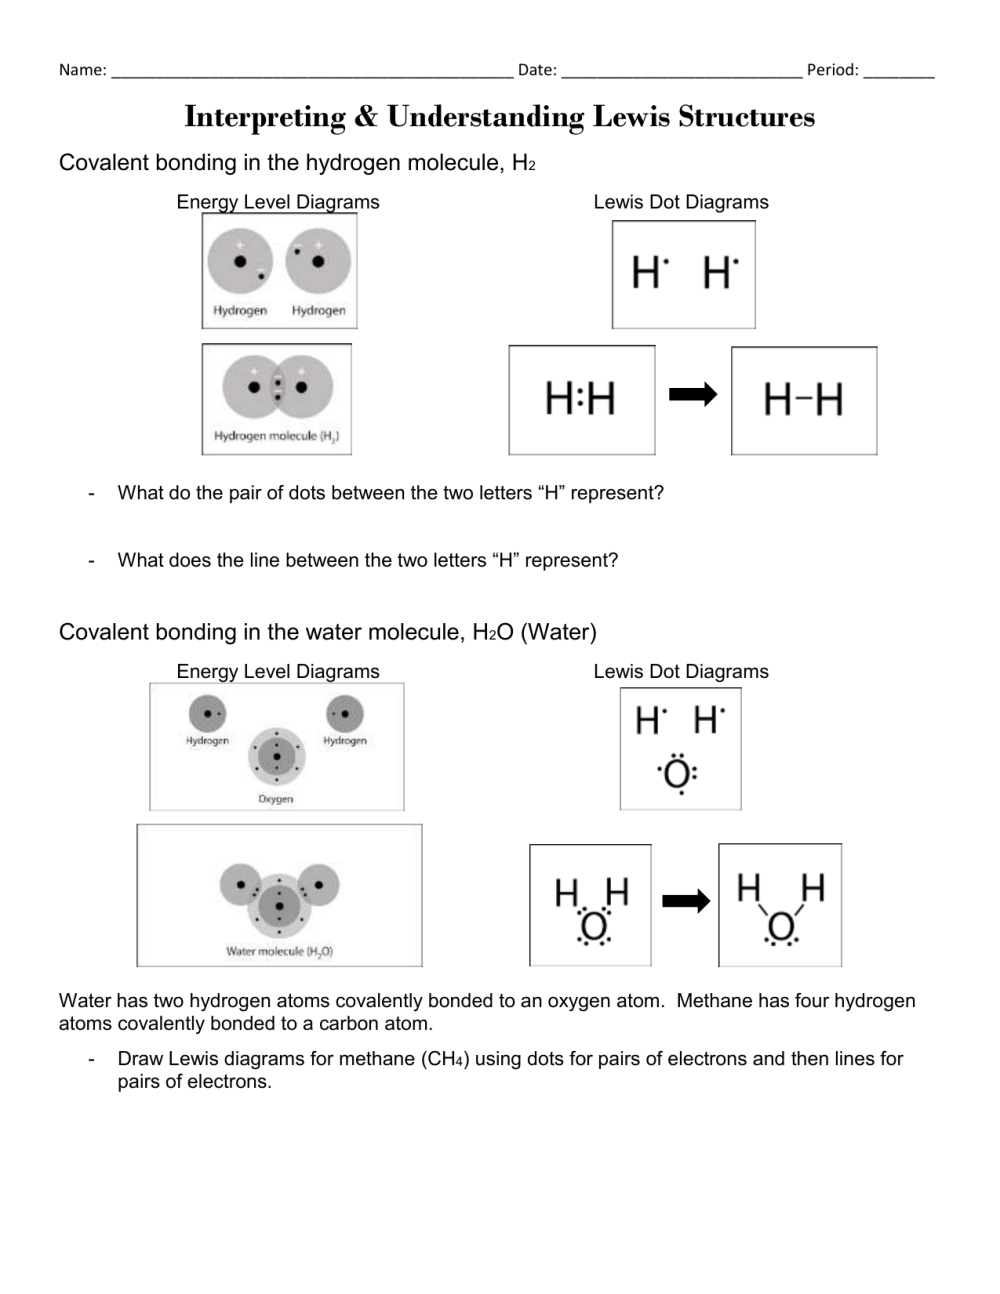 medium resolution of period interpreting understanding lewis structures covalent bonding in the hydrogen molecule h2 energy level diagrams lewis dot diagrams what